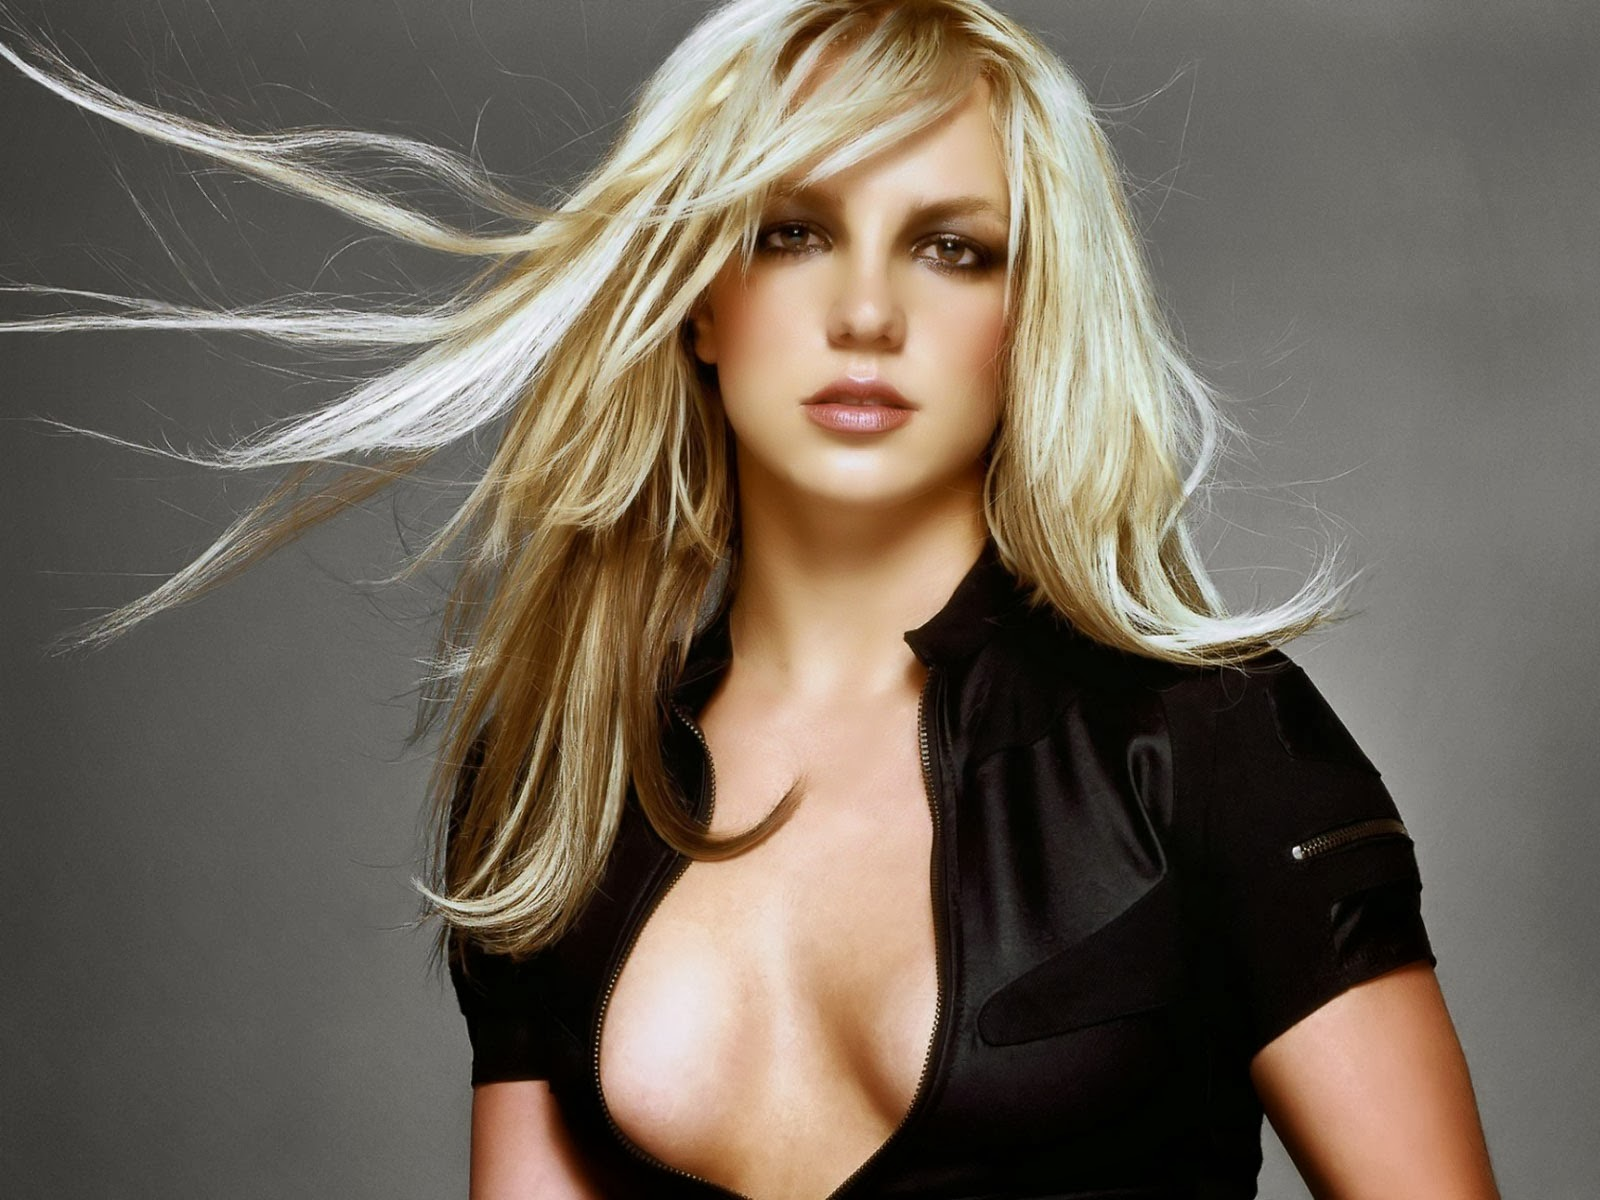 Britney+Spears+Hd+Wallpapers+Free+Download053